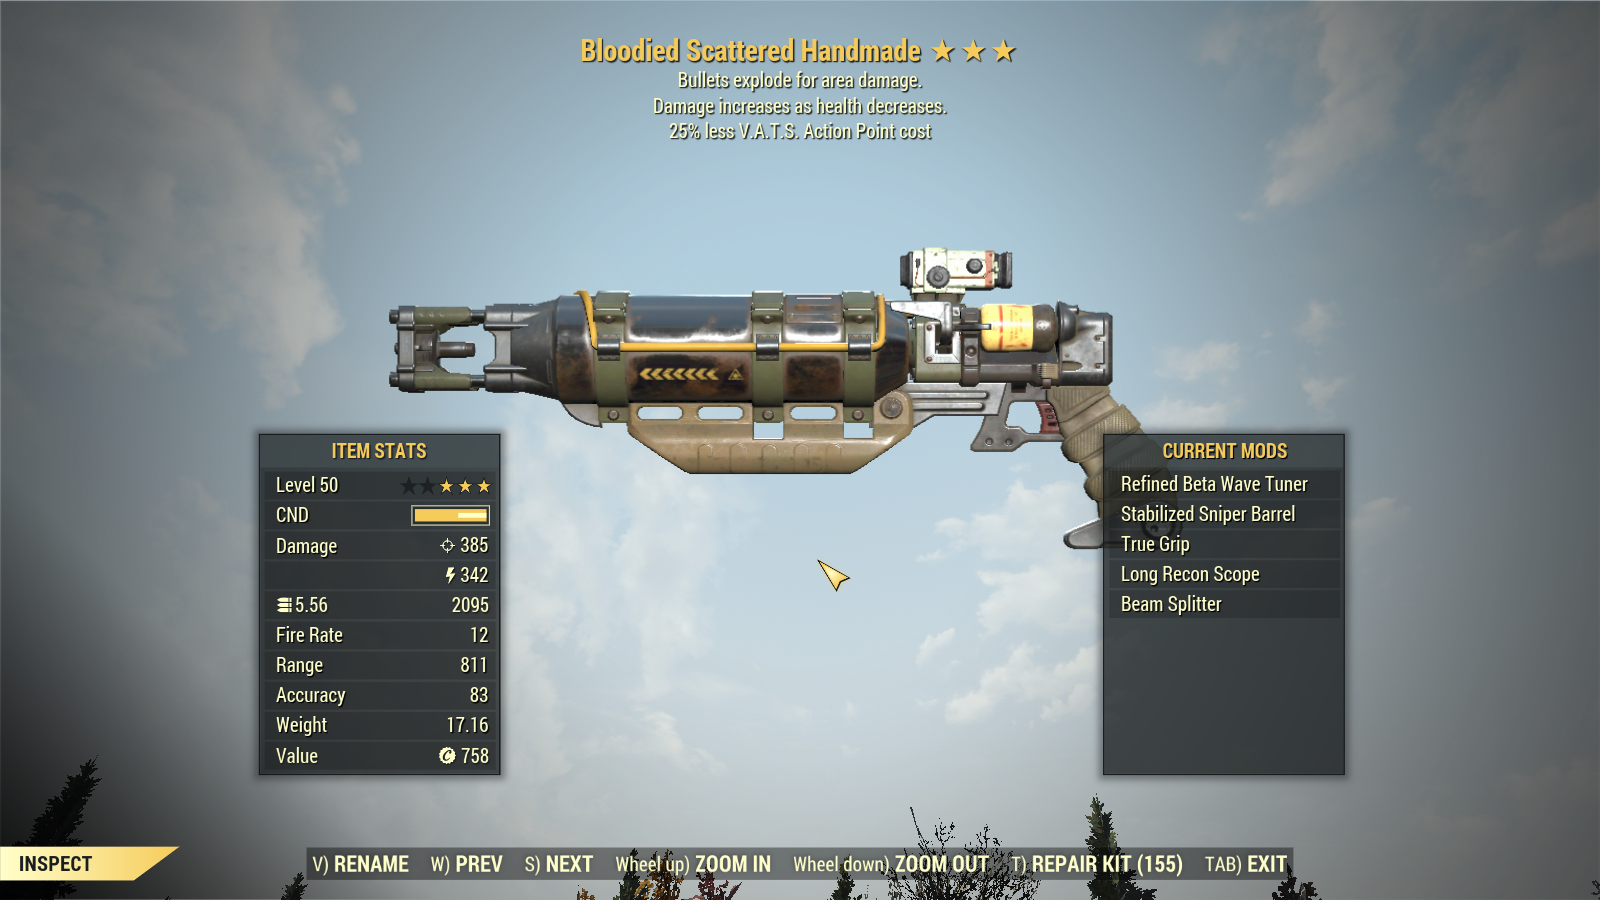 [Rare Glitched] Bloodied Explosive Handmade 25% Less VATS [800+ DAMAGE]